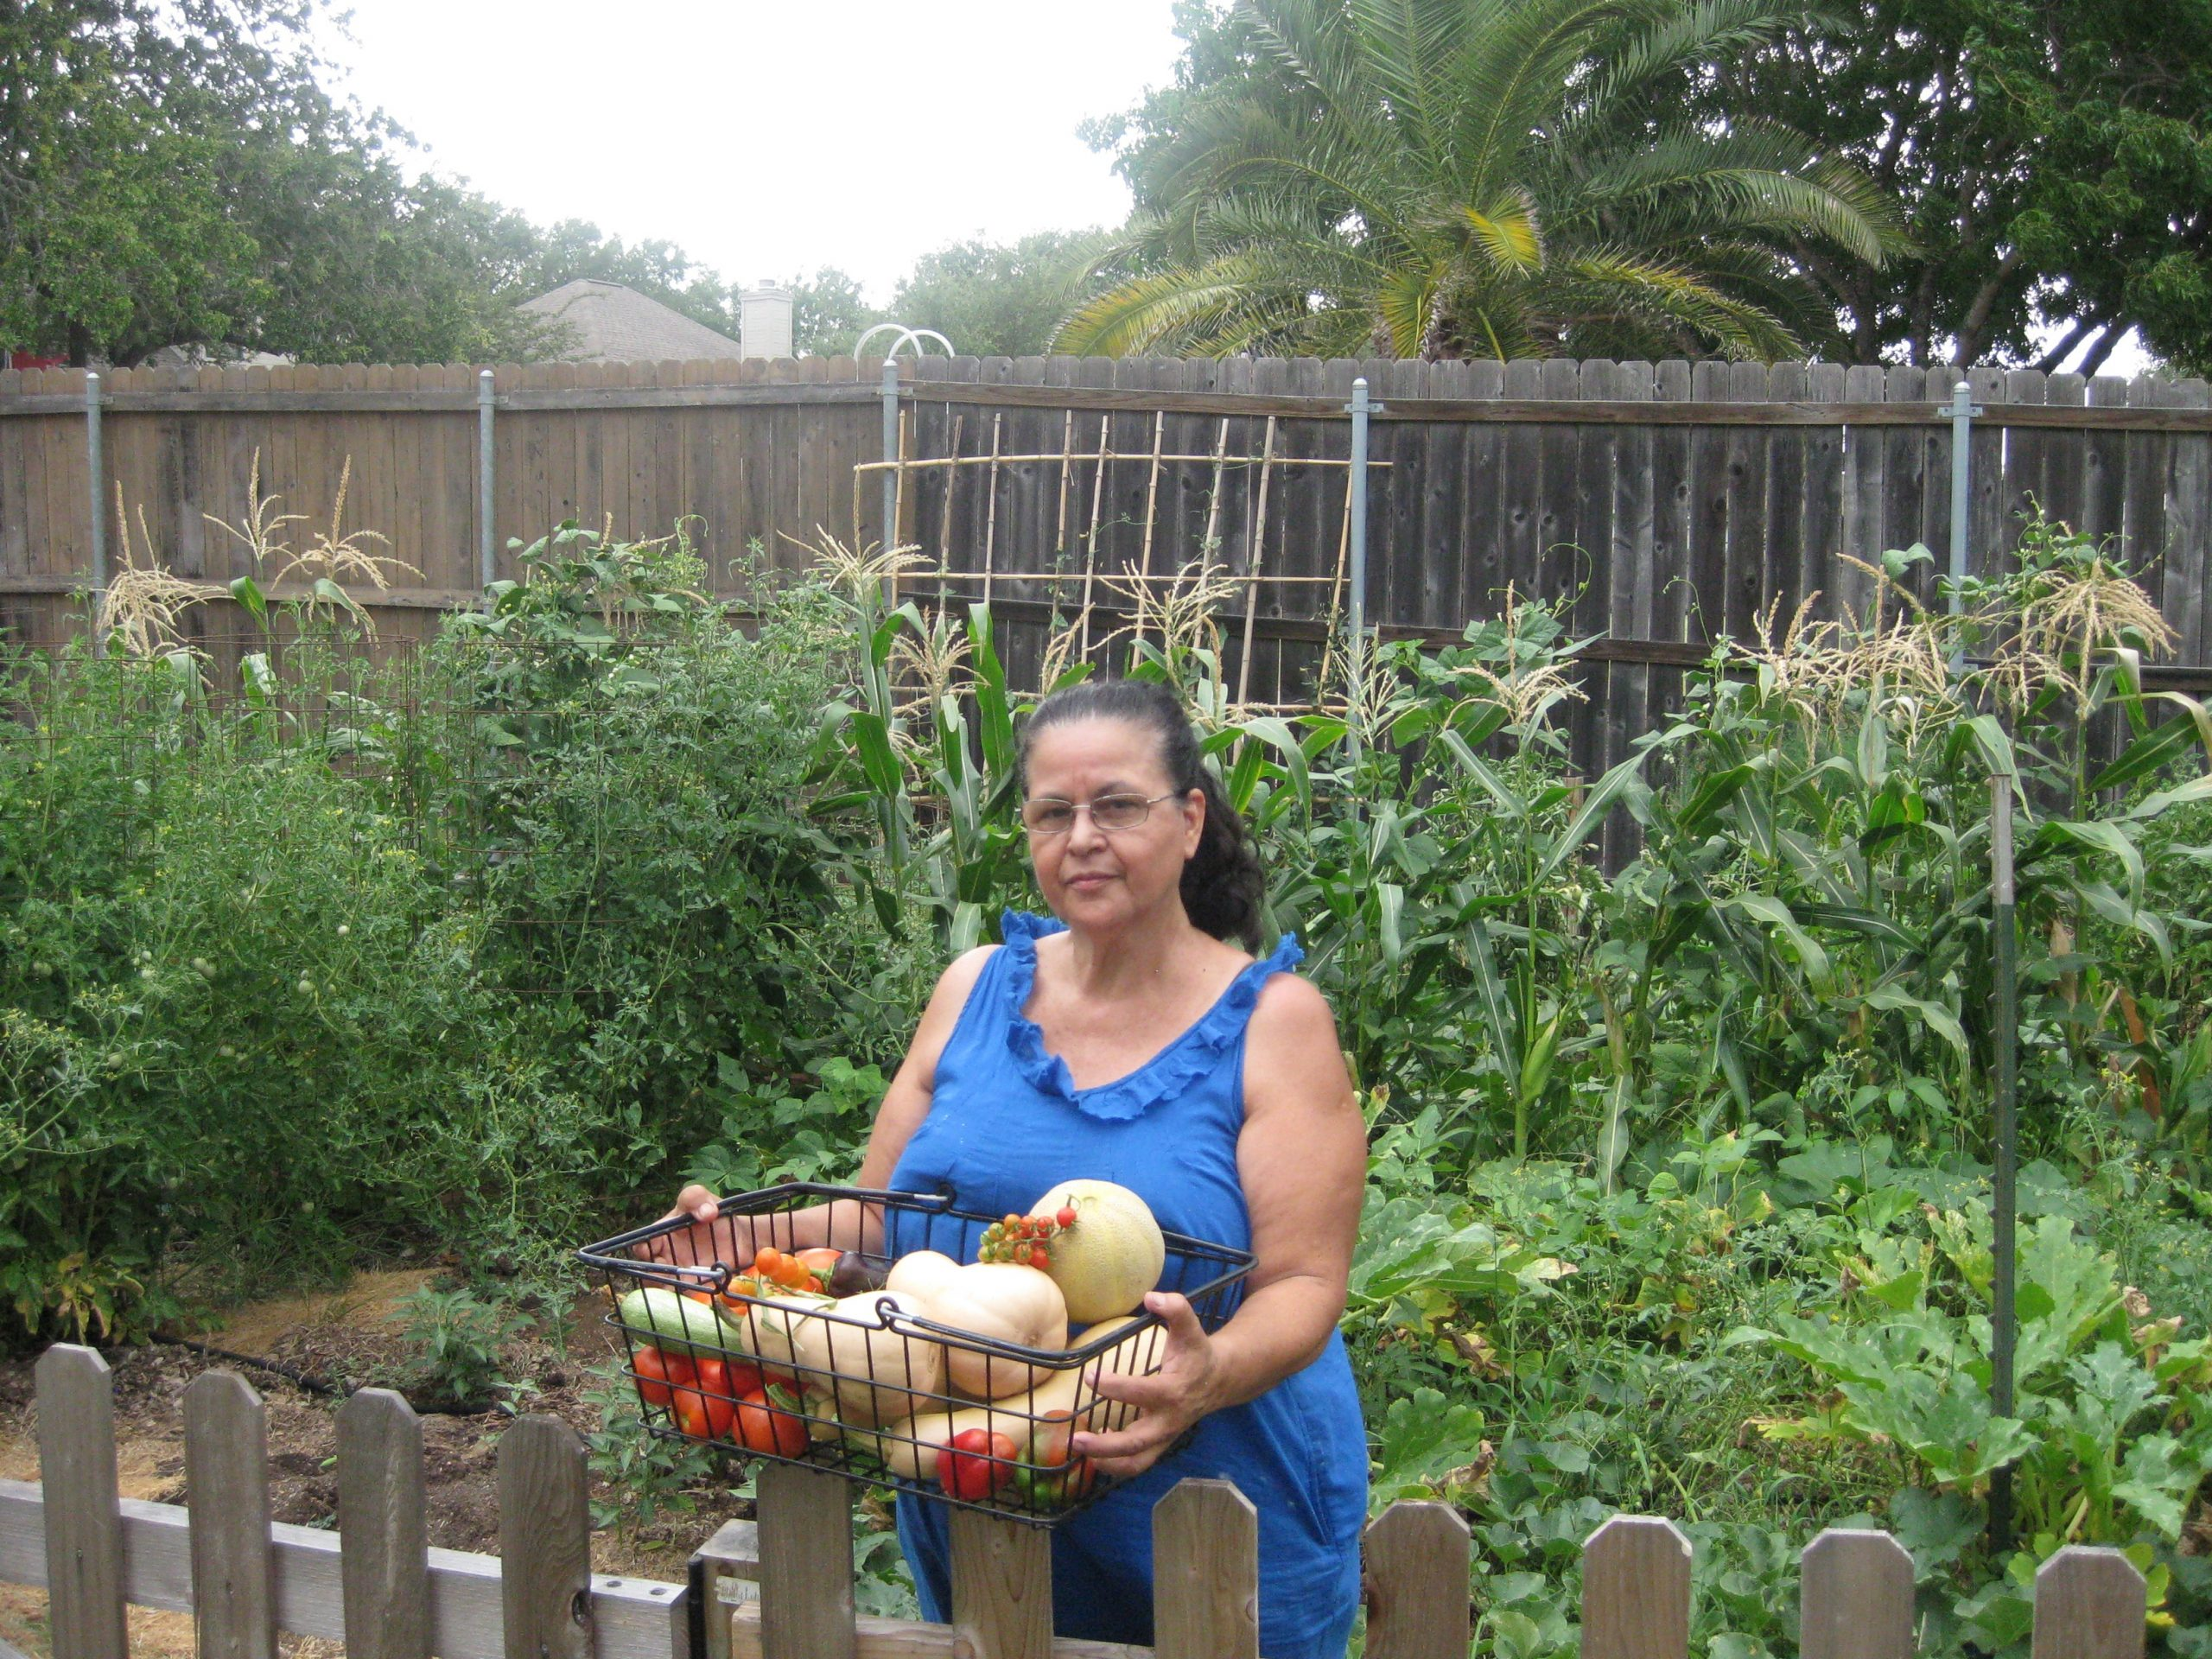 Catalina Trail in her South Austin vegetable garden